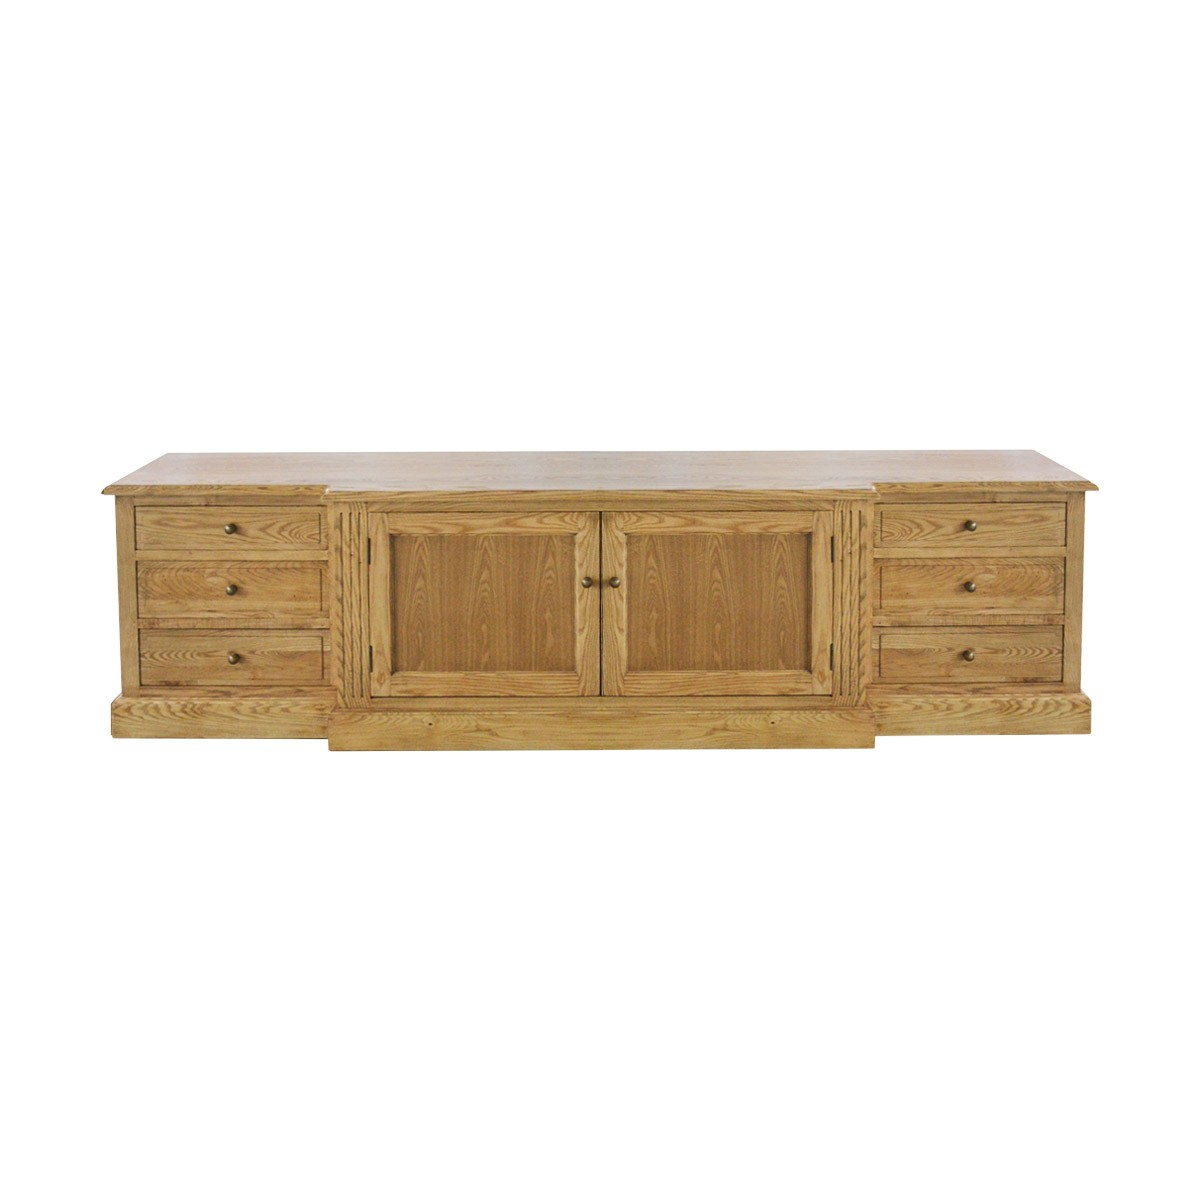 French Provincial Hamptons Large TV Entertainment Unit Stand With Drawers